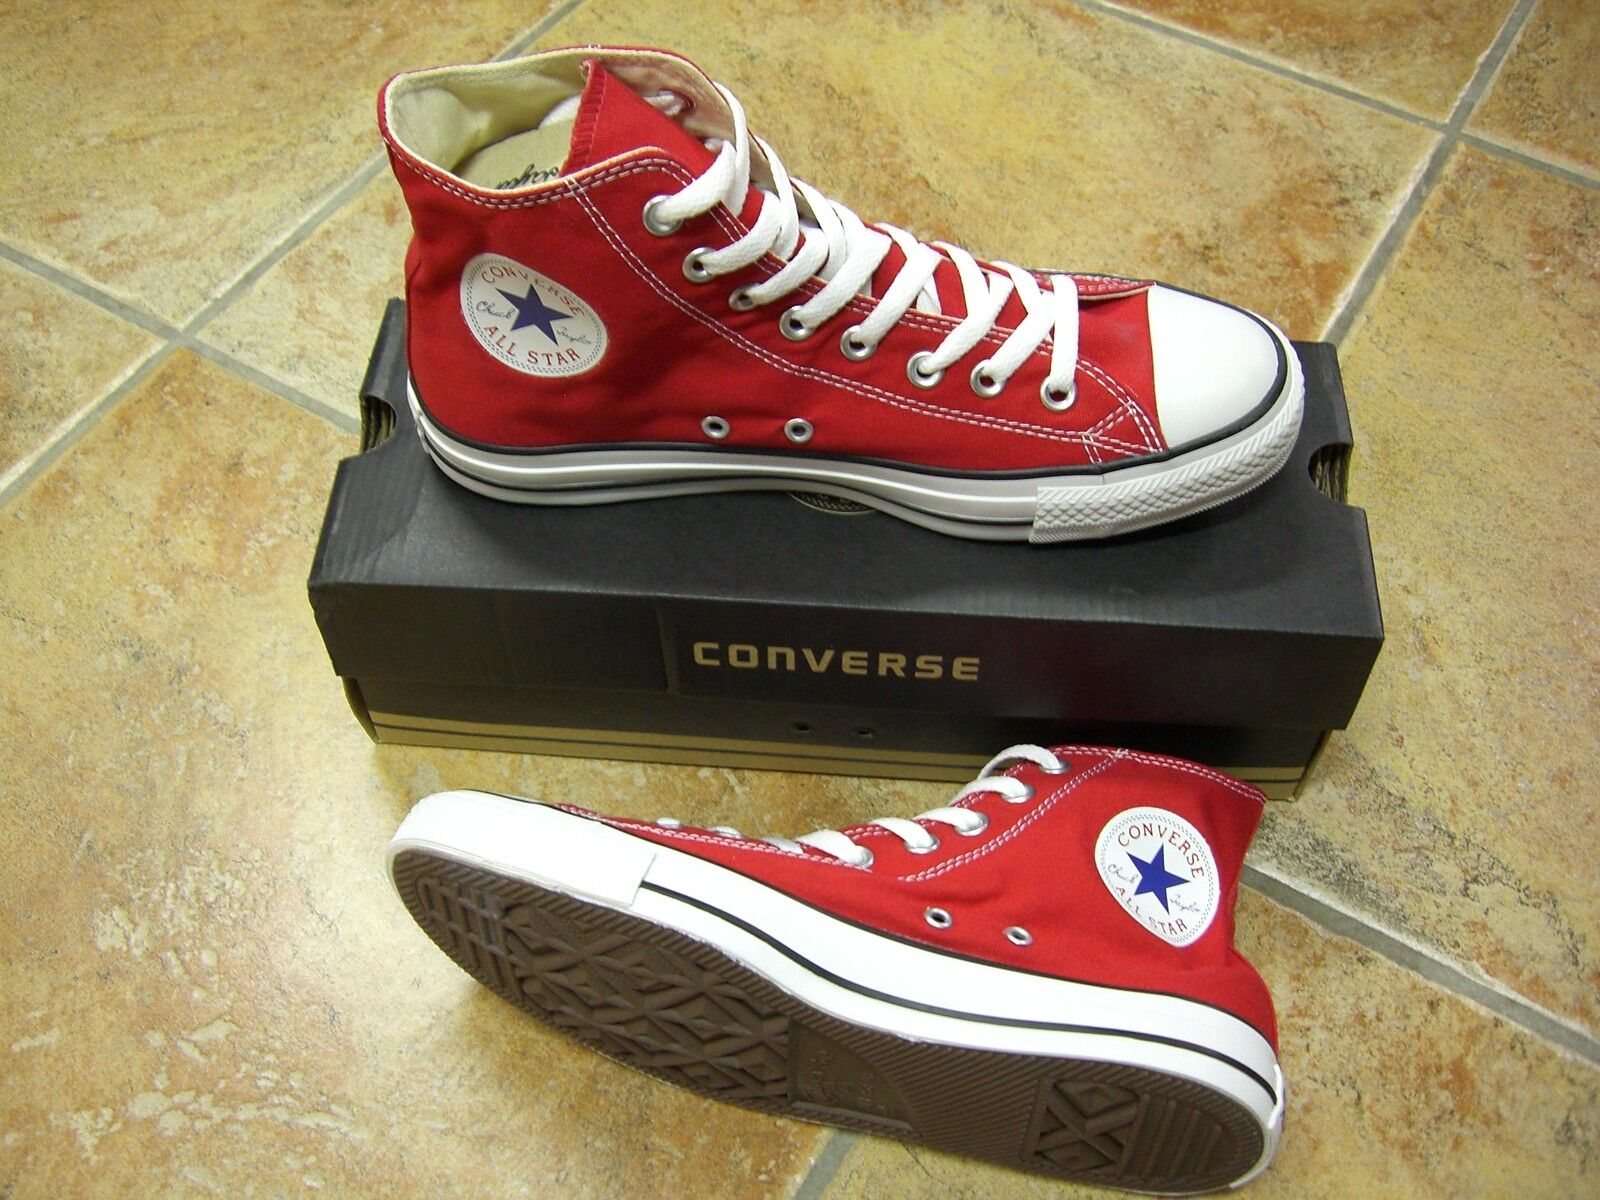 Converse Chucks All Star HI Gr.46  Red M9621 Rot Neu